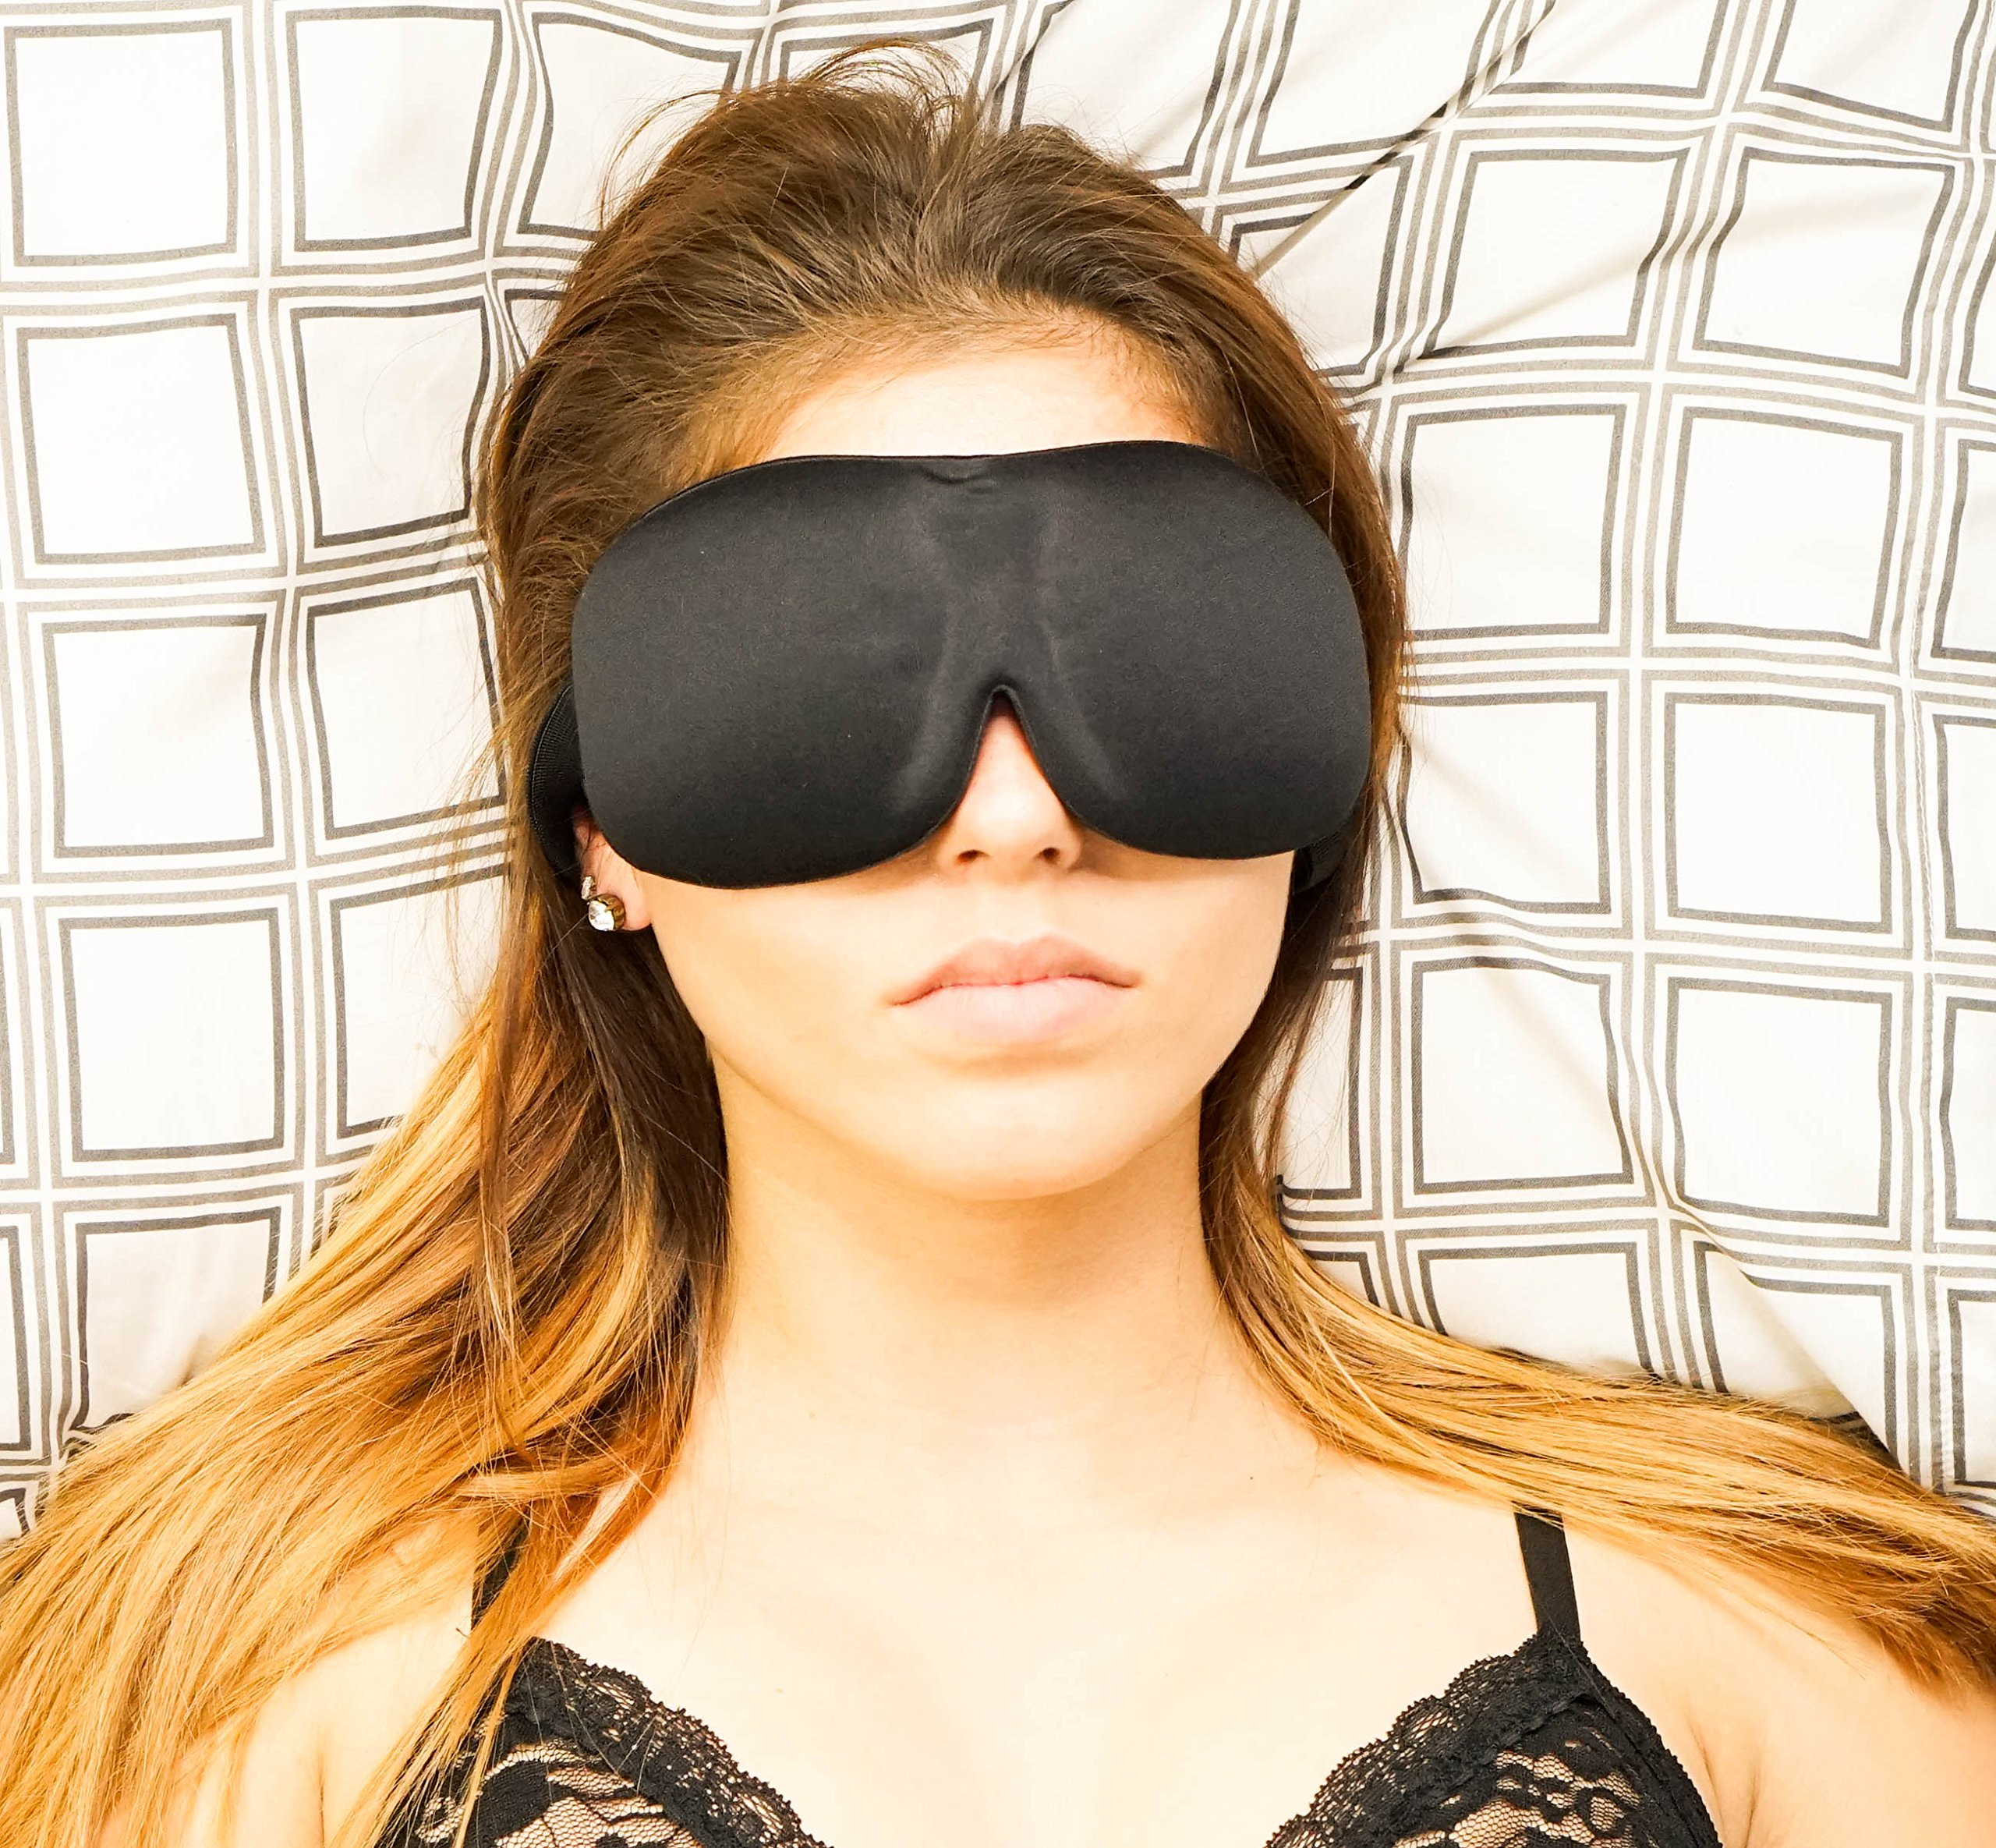 [TOP RATED] Sleep Mask with Earplugs PREMIUM Quality Contoured Eye Mask - Lightweight With Adjustable Strap - Blocks The Light Completely - Best For Travel, Insomnia or Quiet Night Sleep by SleePedia (Image #5)